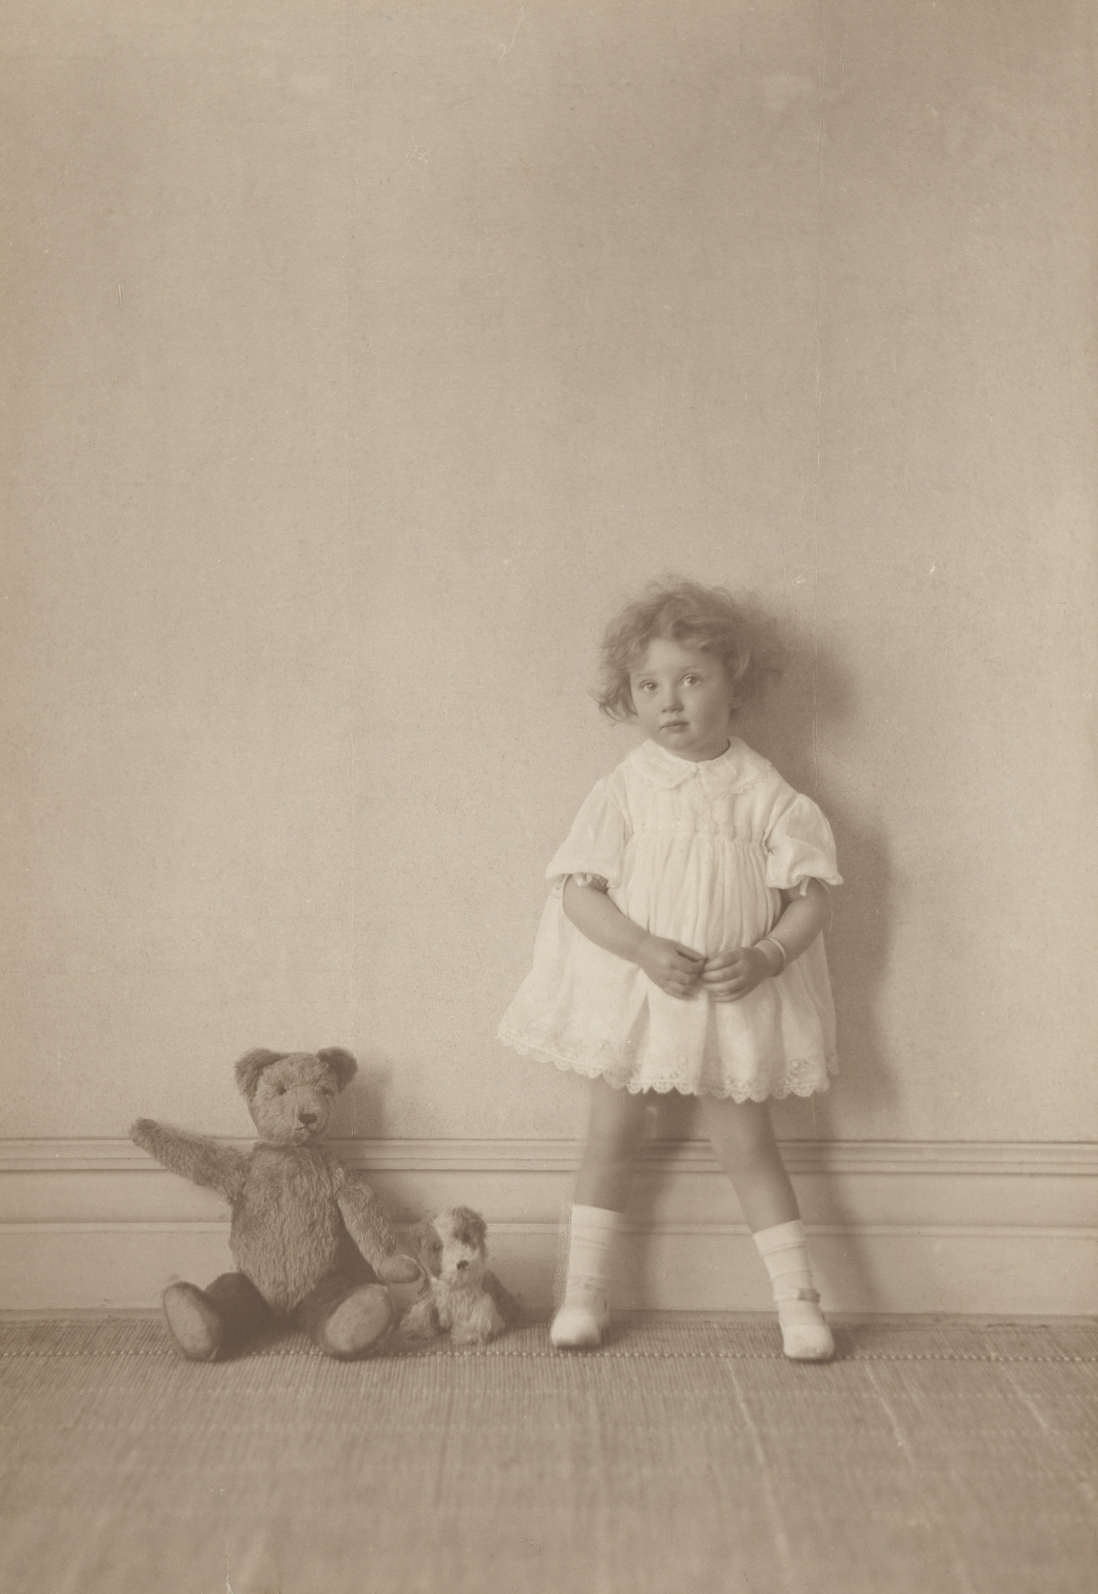 This is a black and white photograph of a little girl in a short white dress standing against a wall with a teddy bear and stuffed dog to her left